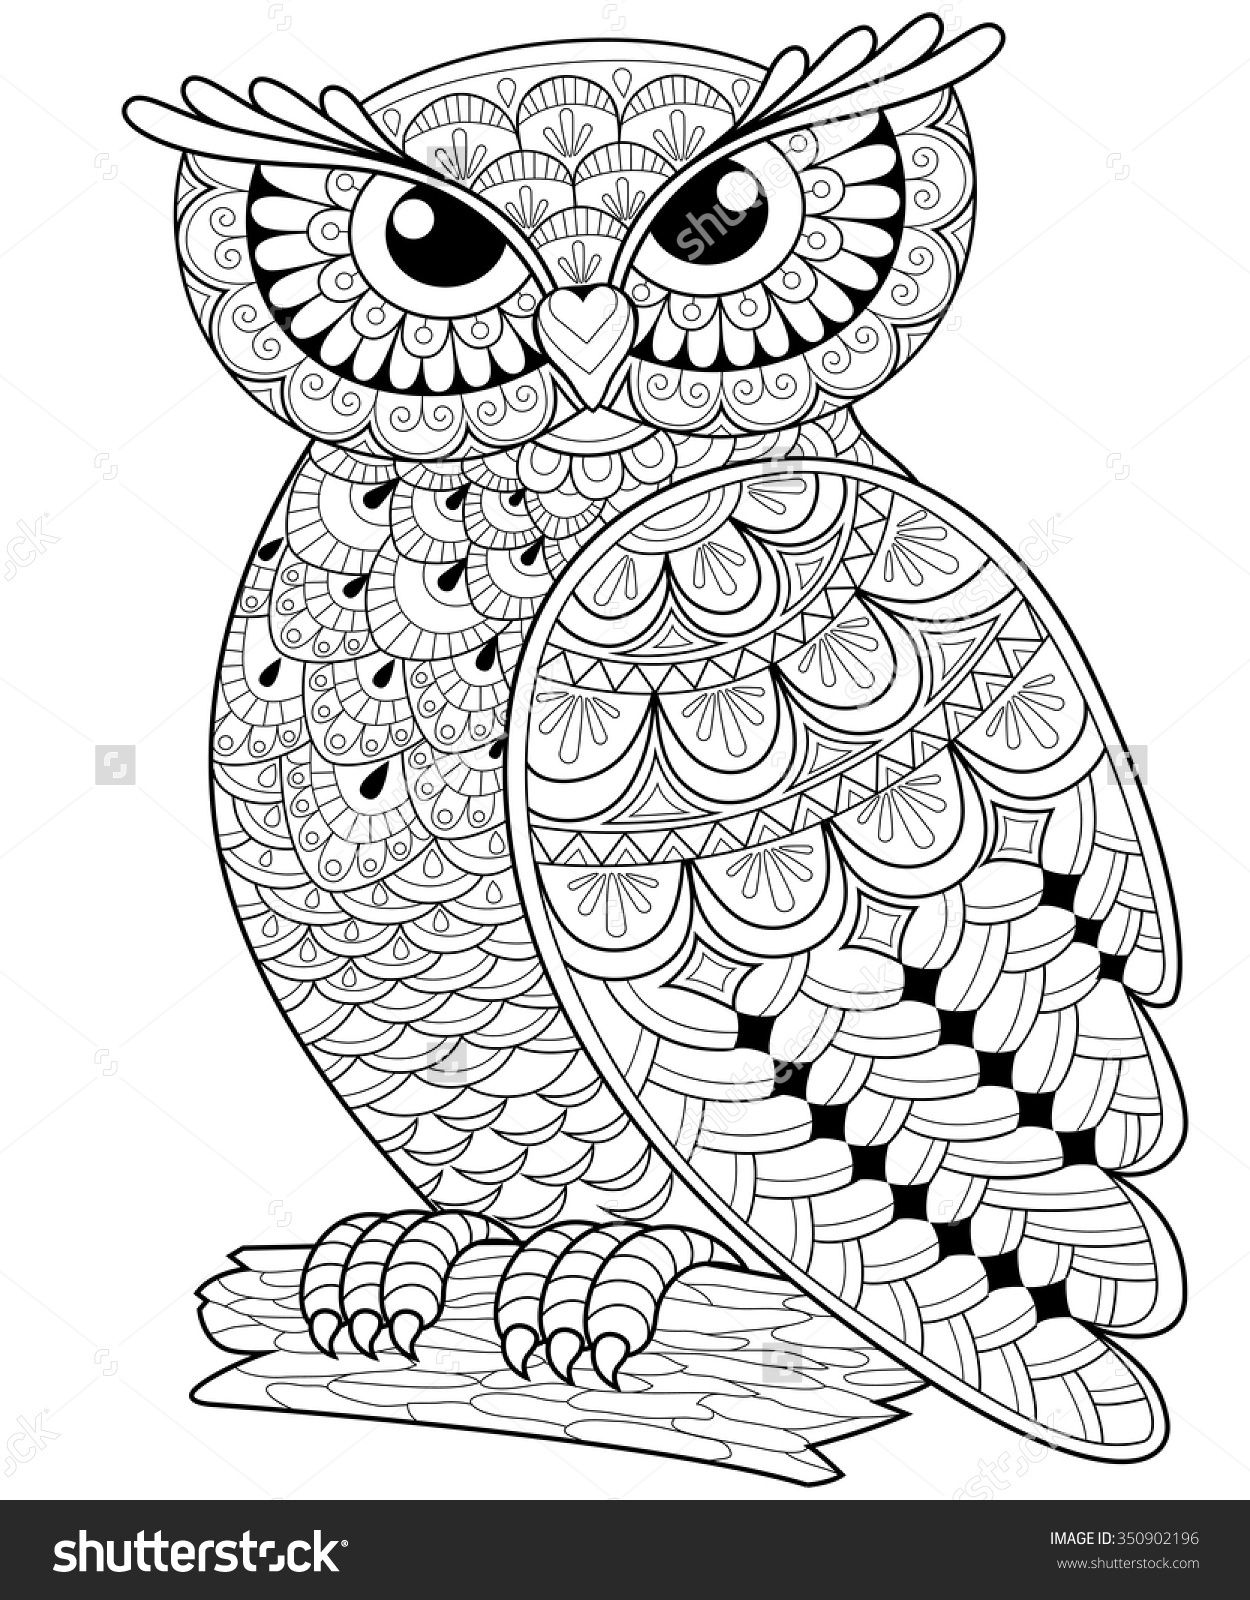 Anti stress colouring pages for adults - Decorative Owl Adult Antistress Coloring Page Black And White Hand Drawn Illustration For Coloring